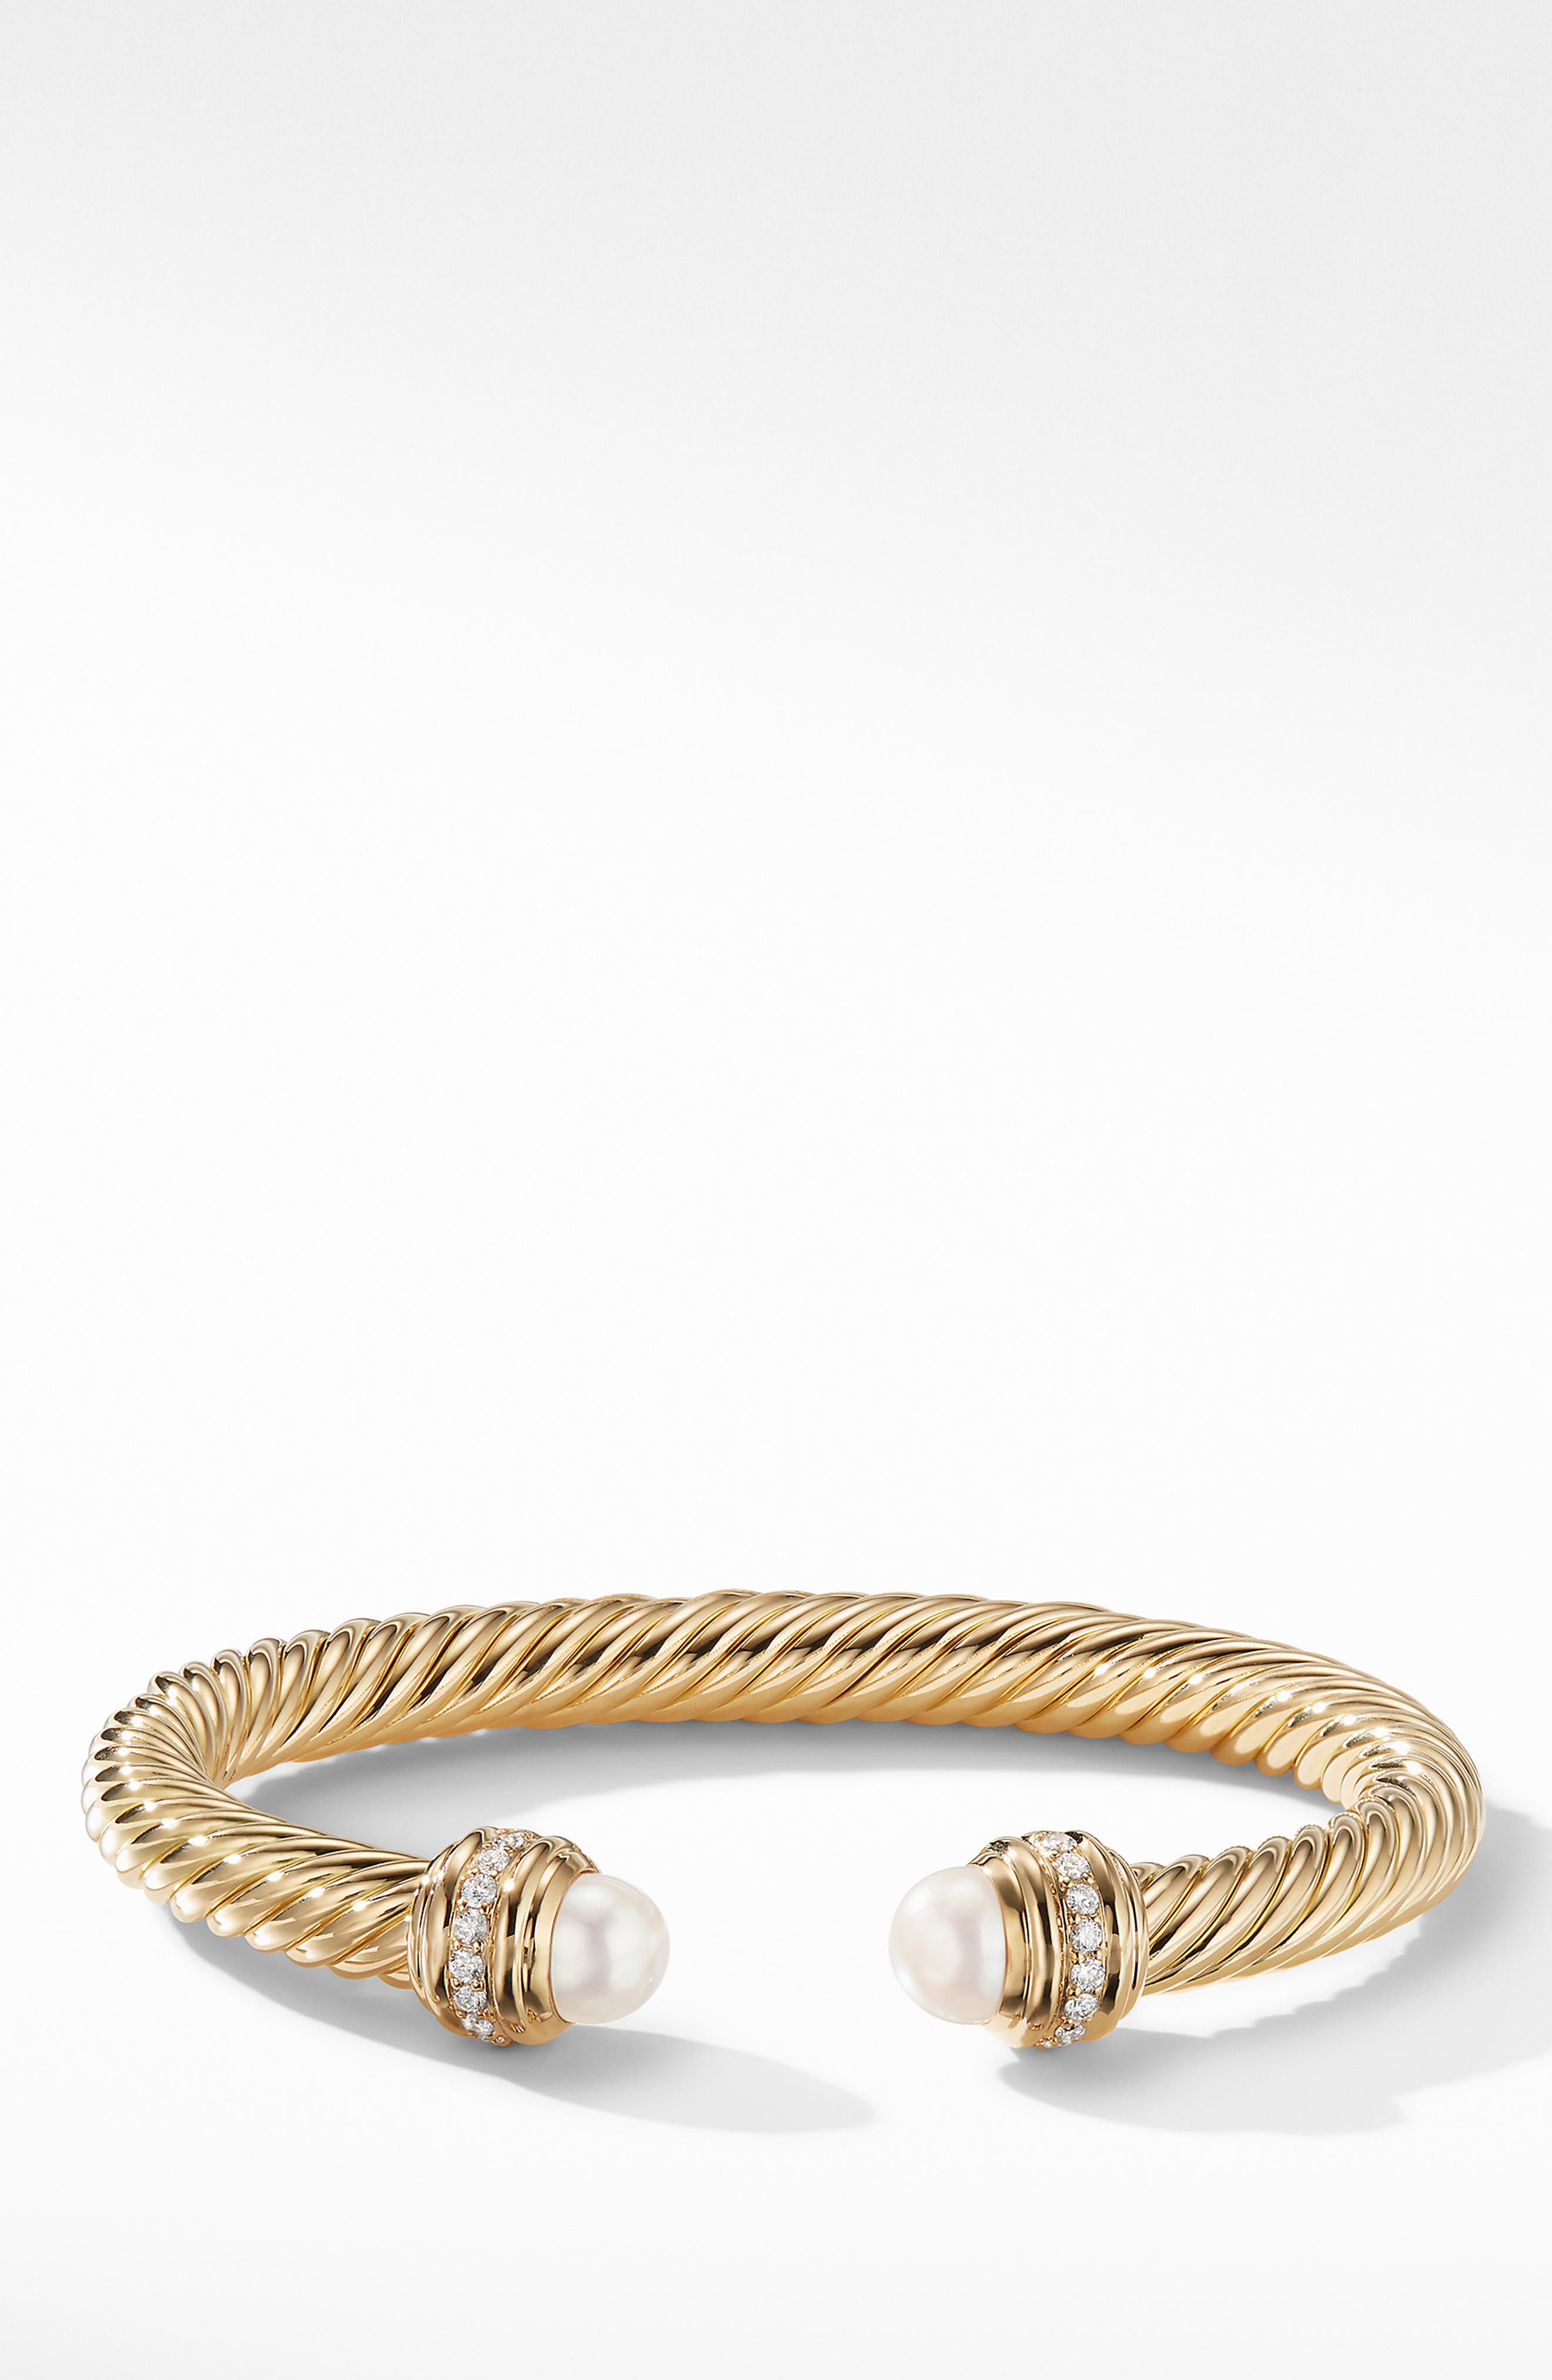 Cable Bracelet in 18K Gold with Diamonds,                             Alternate thumbnail 2, color,                             YELLOW GOLD/ DIAMOND/ PEARL